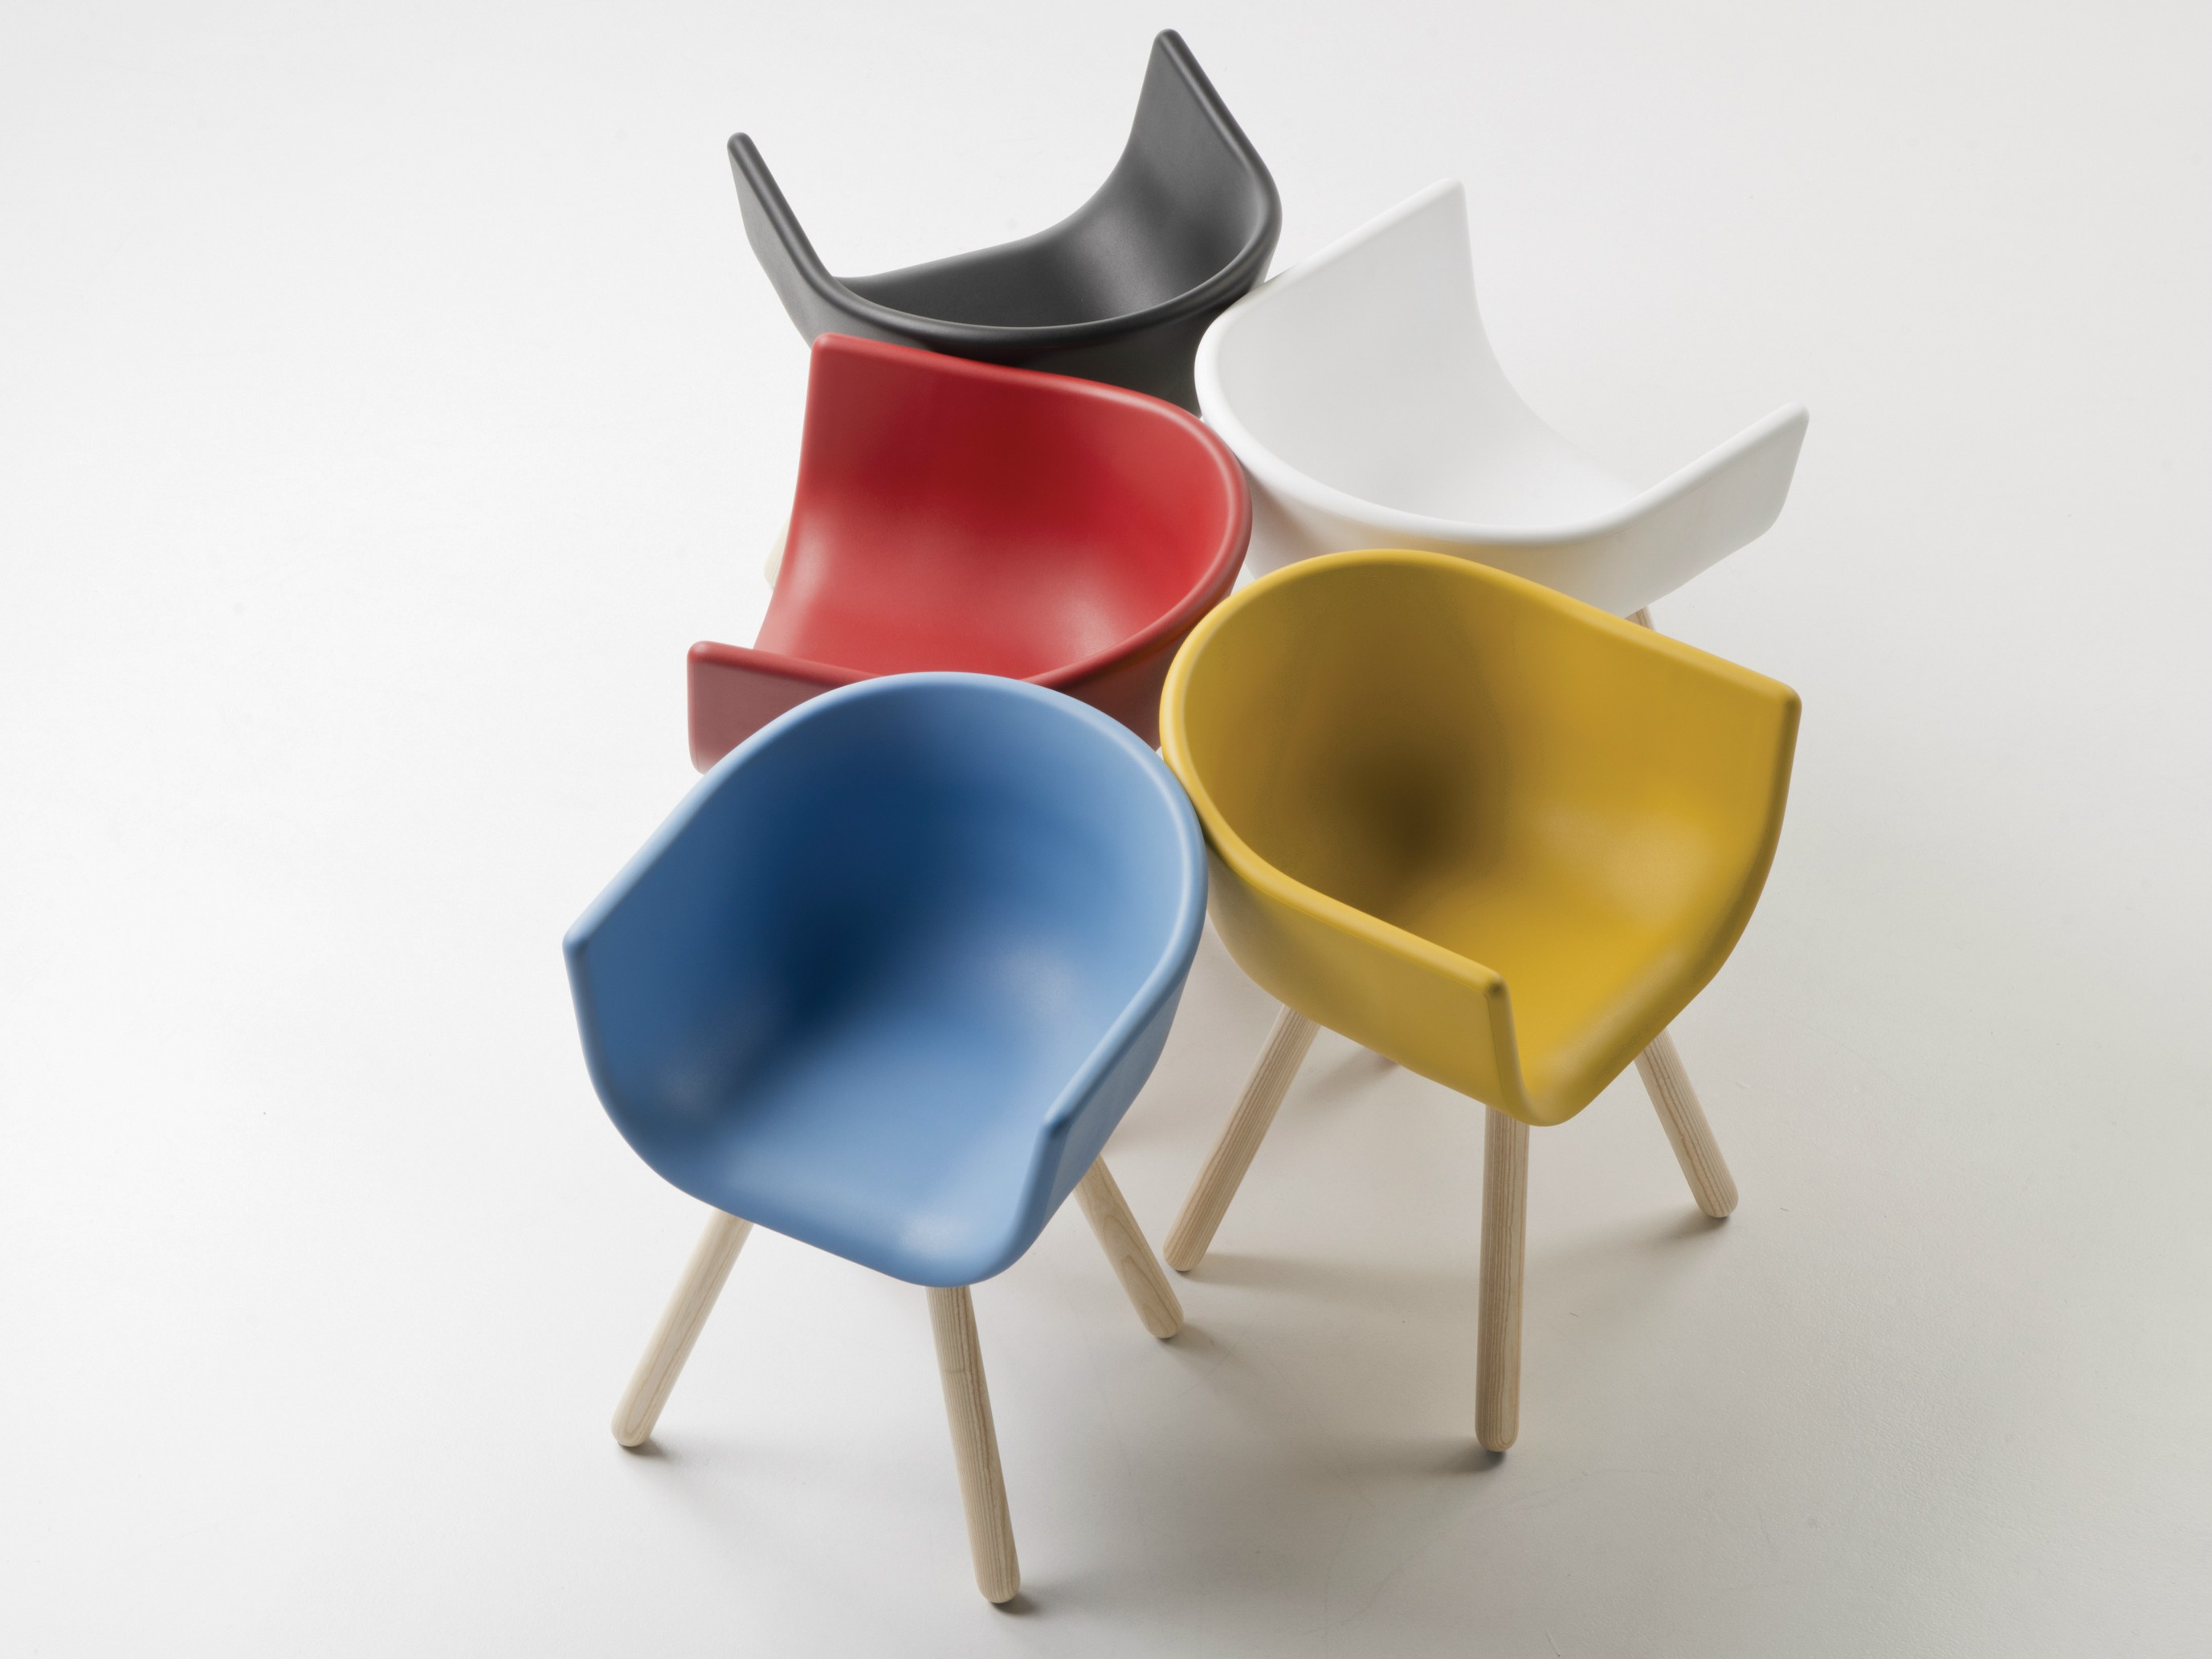 Tulip Small Chairs by Kazuko Okamoto for Chairs & More